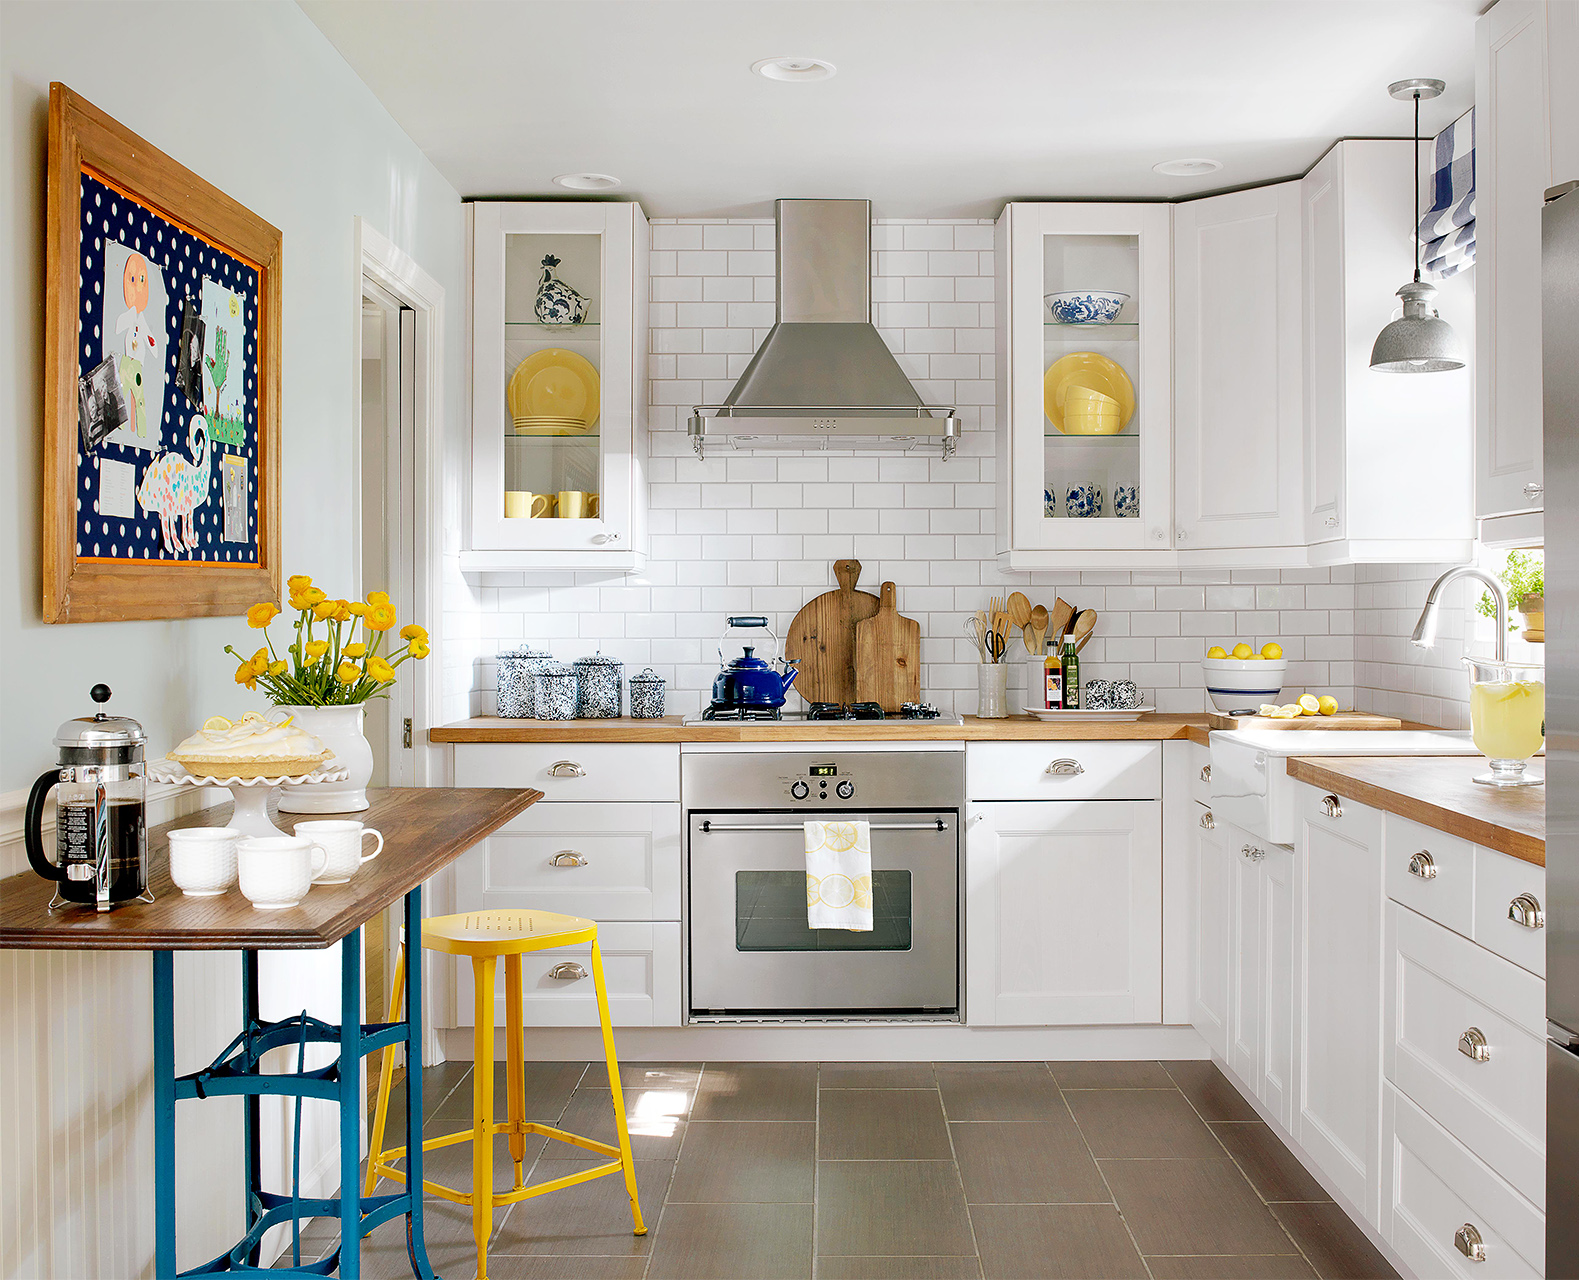 decorating strategies for your kitchen stephenson house 91 Comfortable Kitchen Design Tips 2020 id=92467